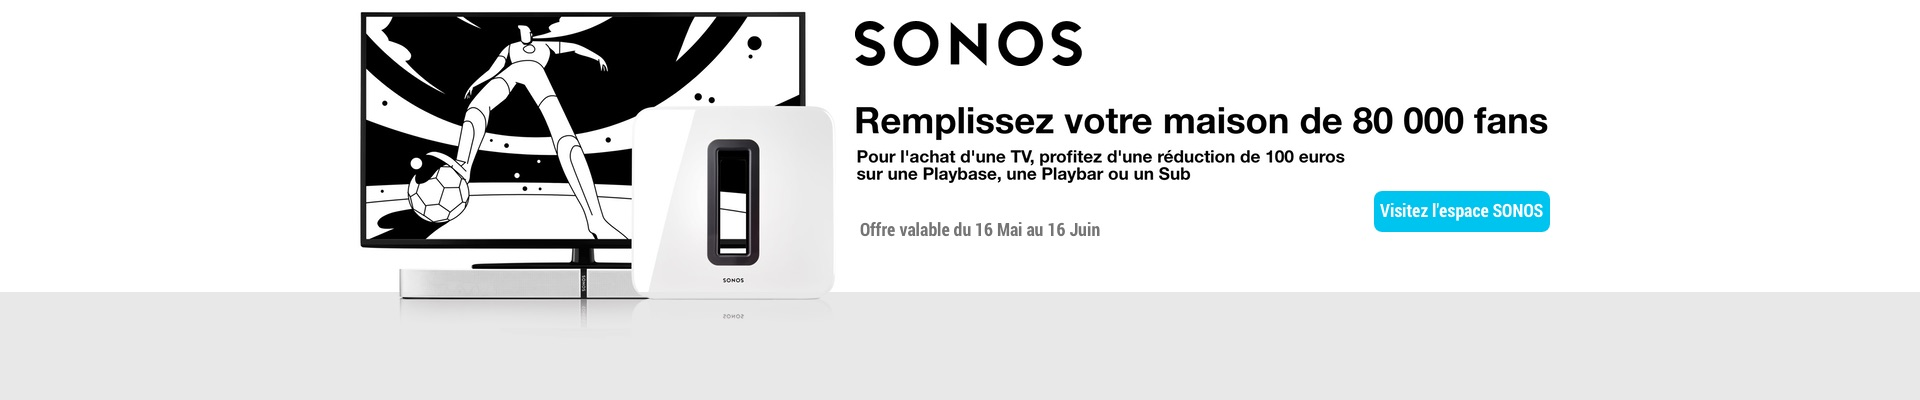 S20180516-sonos-worldcup-2018